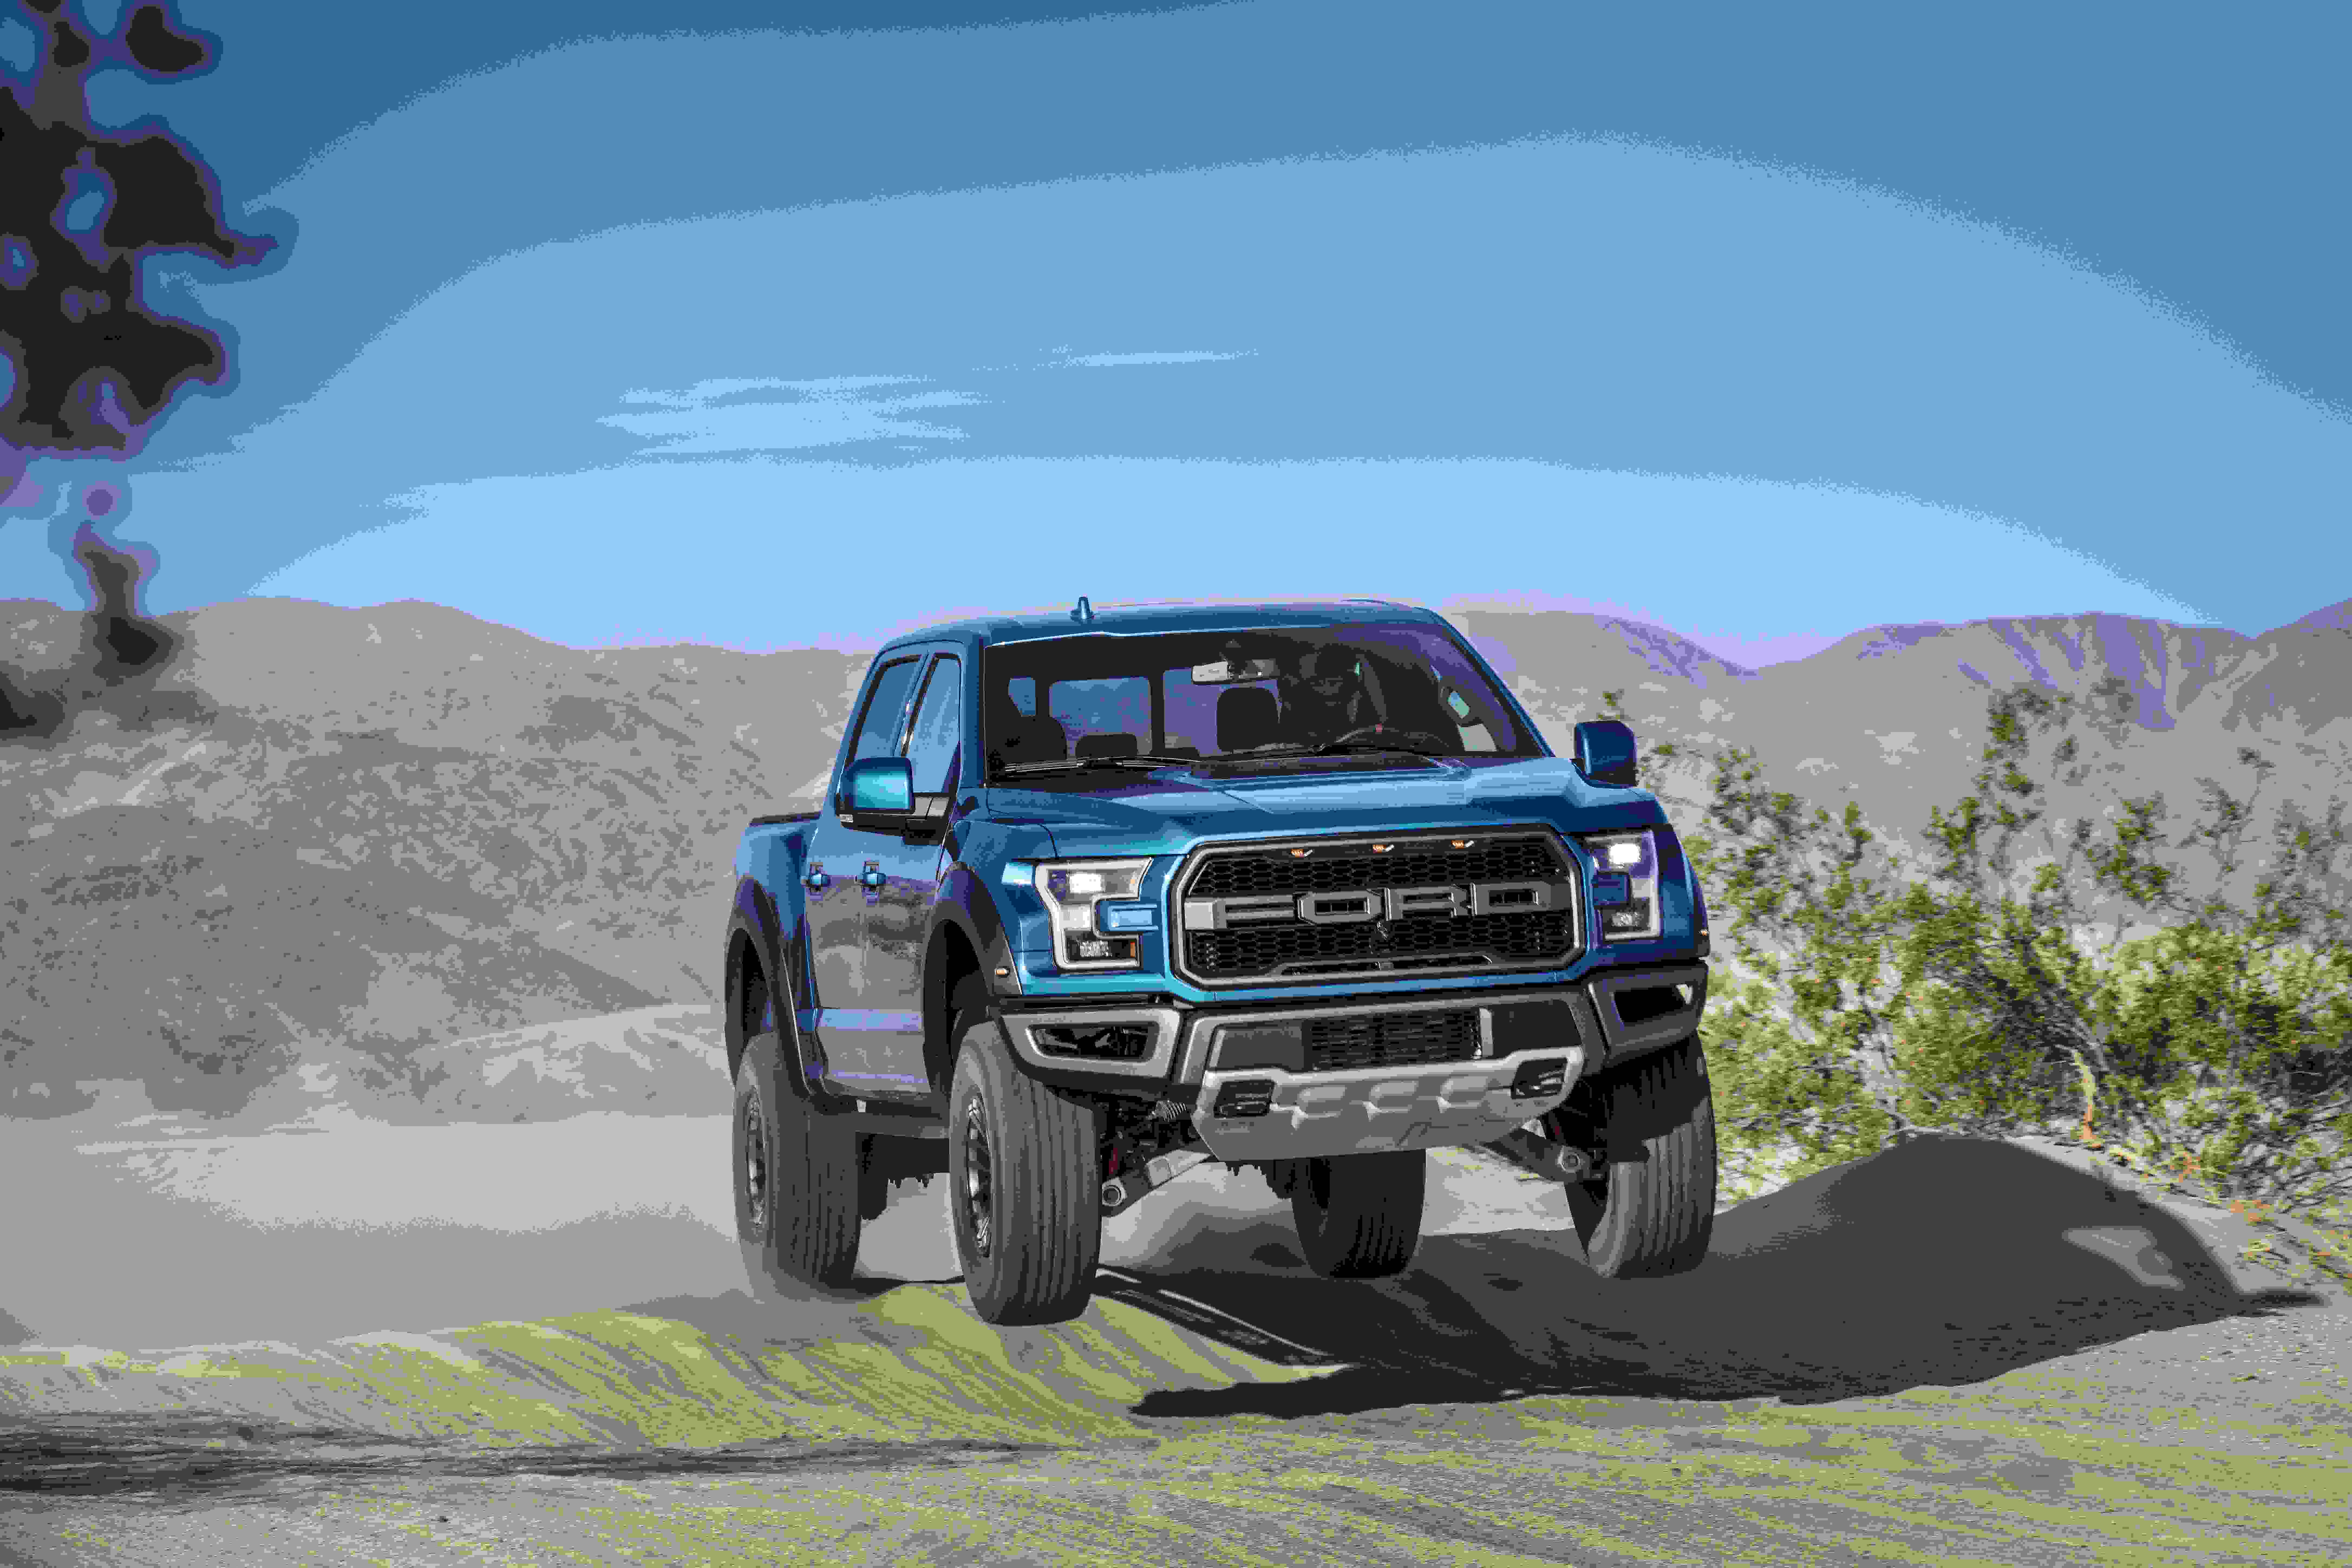 Ford announced upgrades today to its 2019 f 150 raptor which aim at turning up the capability and comfort of its iconic off road truck